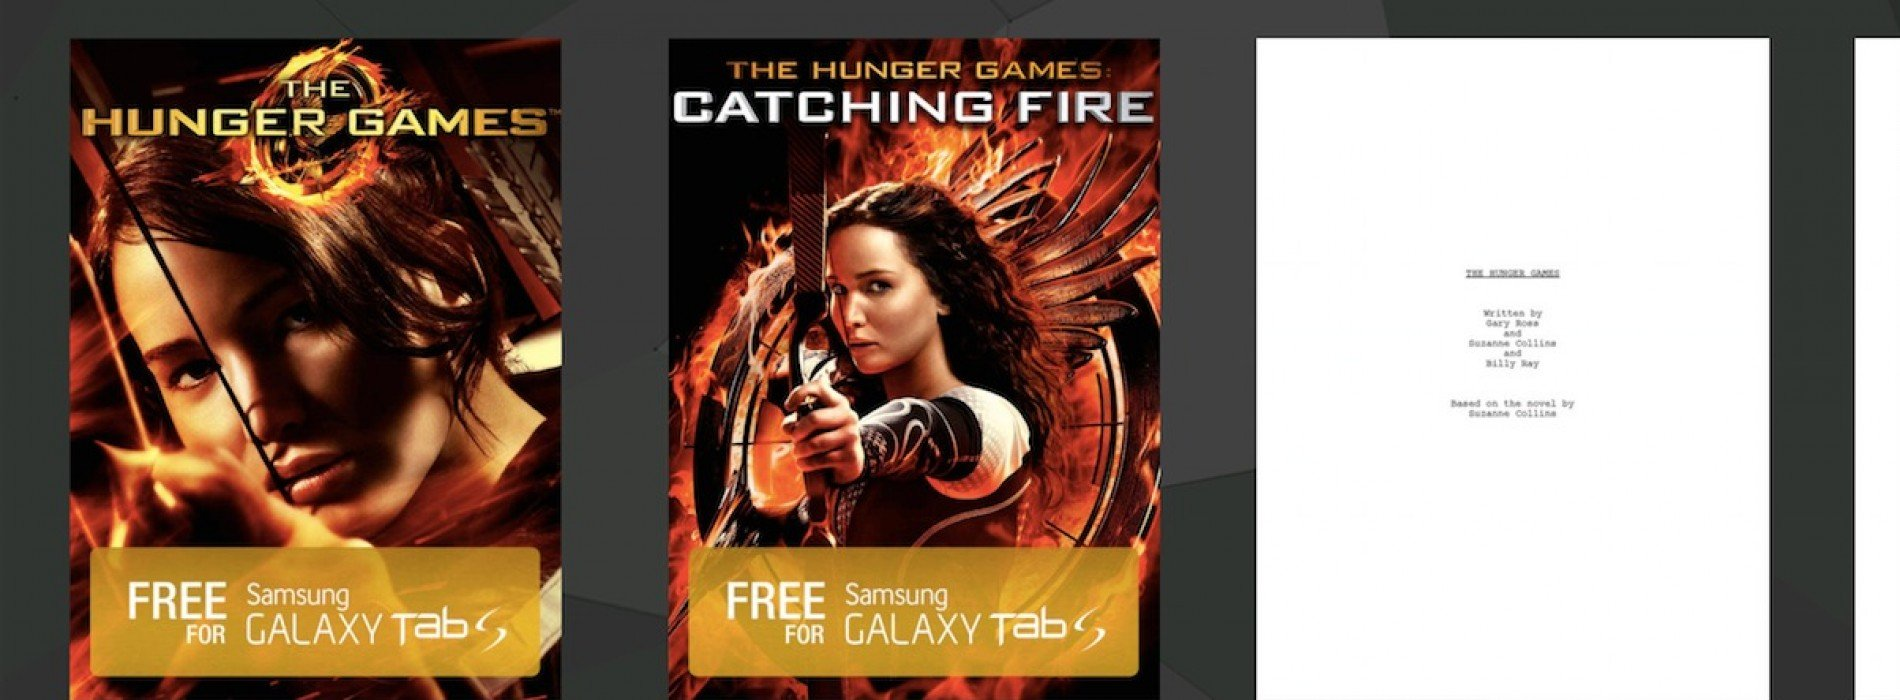 Select Samsung devices can access exclusive content with The Hunger Games Movie Pack